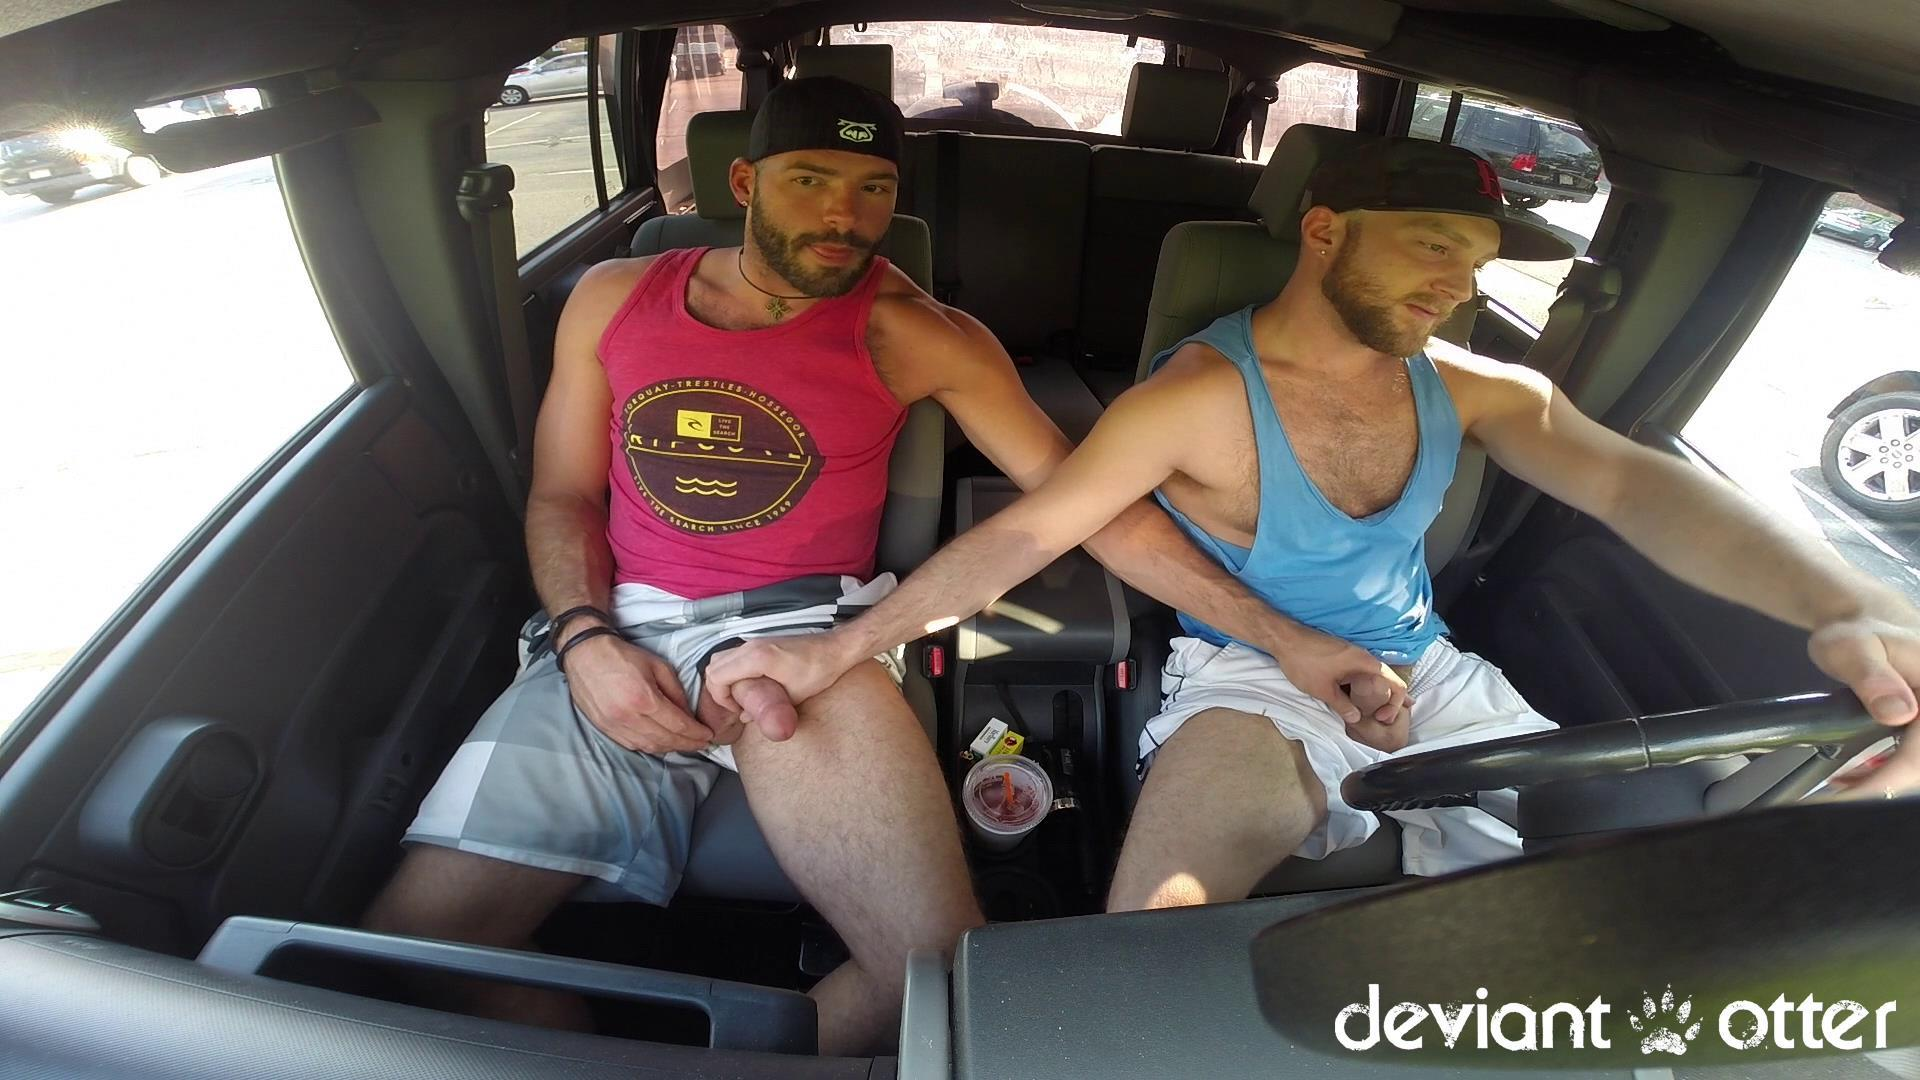 Deviant-Otter-Xavier-Sucking-Cock-In-Public-Hairy-Guys-Amateur-Gay-Porn-04 Masculine Hairy Guys Sucking Each Other's Cock In A Parking Lot